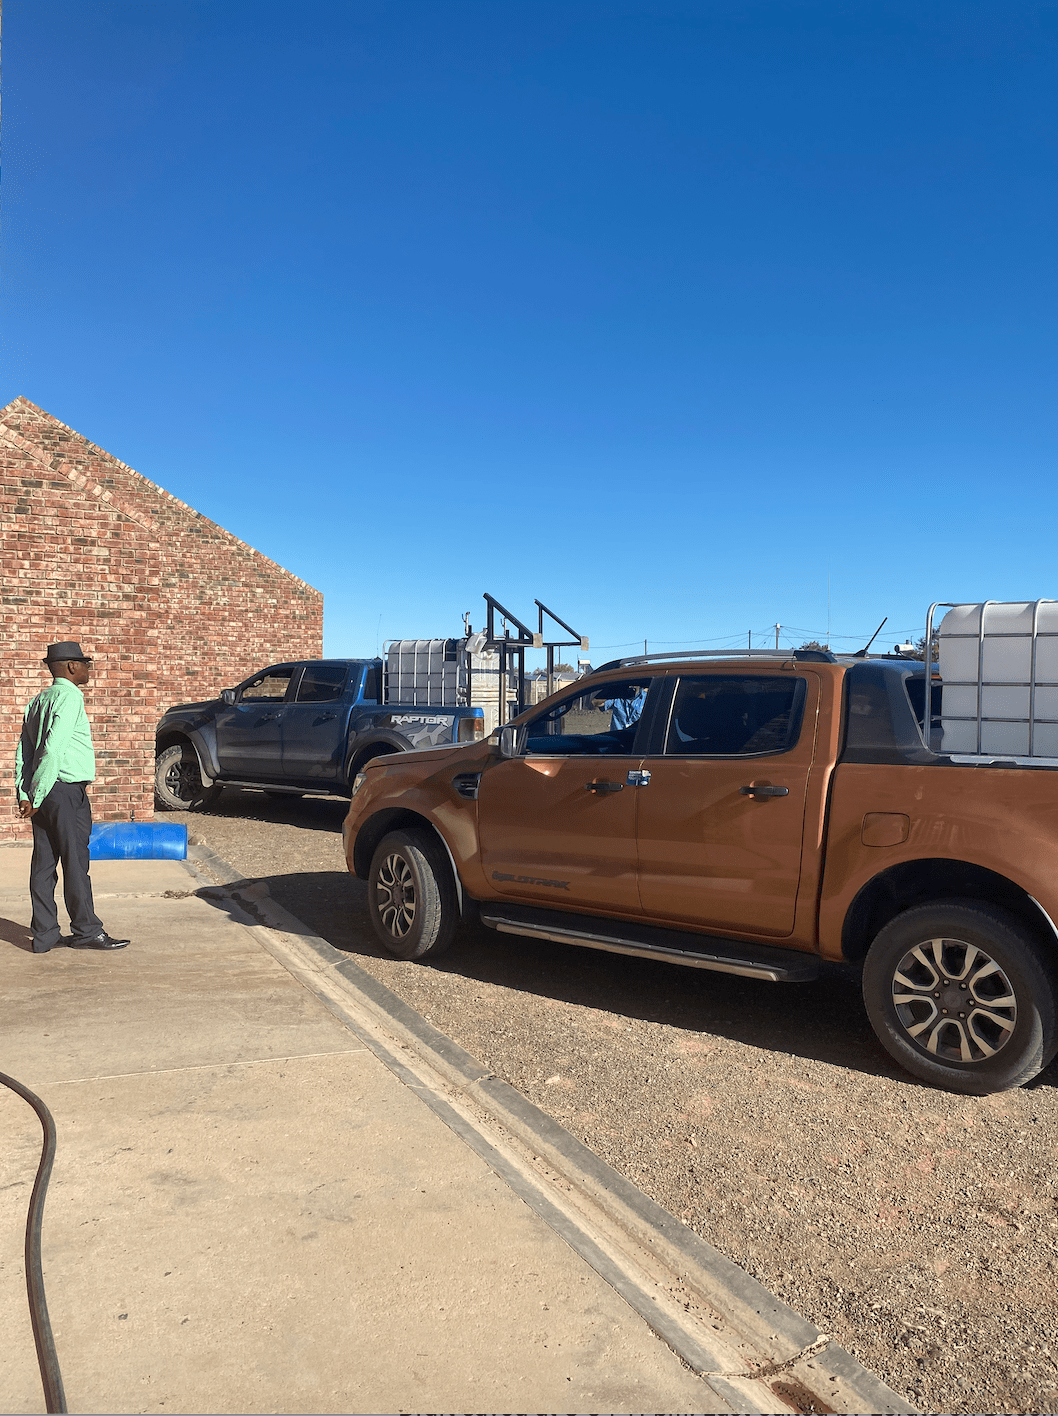 #DrivesWithAMission Ford South Africa